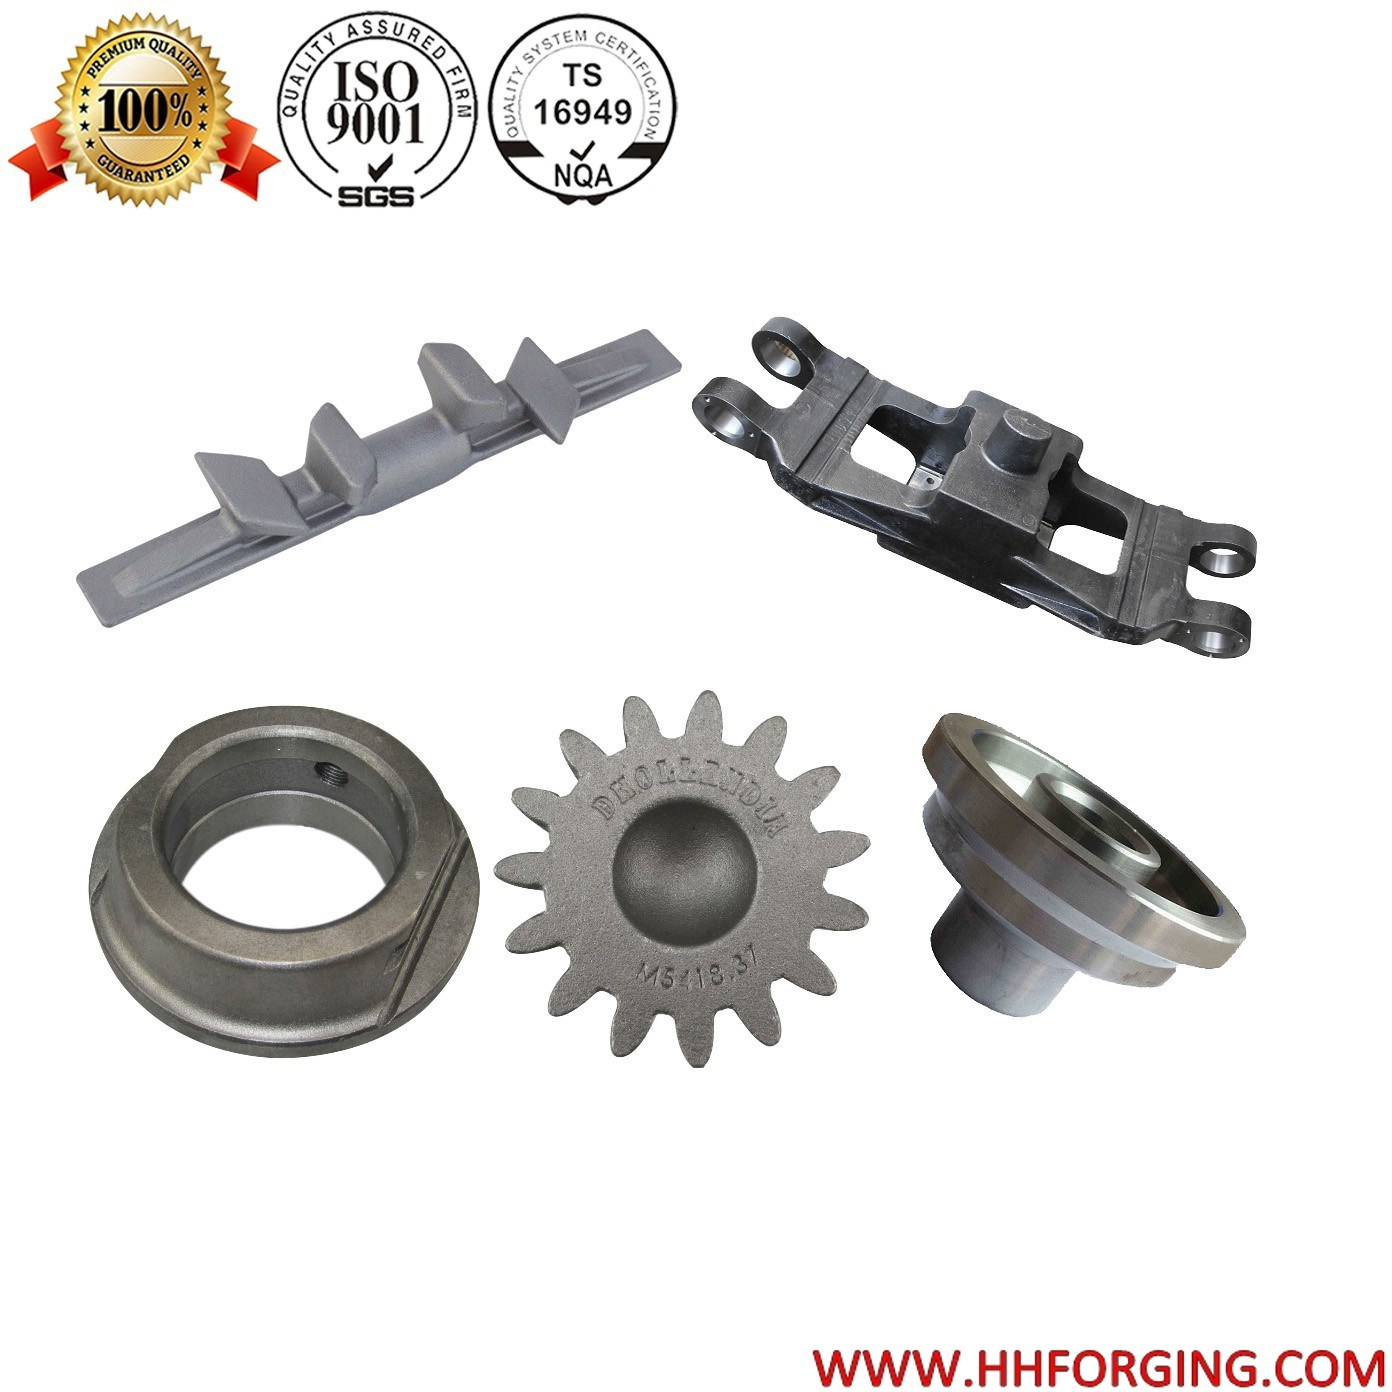 High Quality Hot Die Forging, Steel Forging, Aluminium Forging, Brass Forging, Titanium Forging